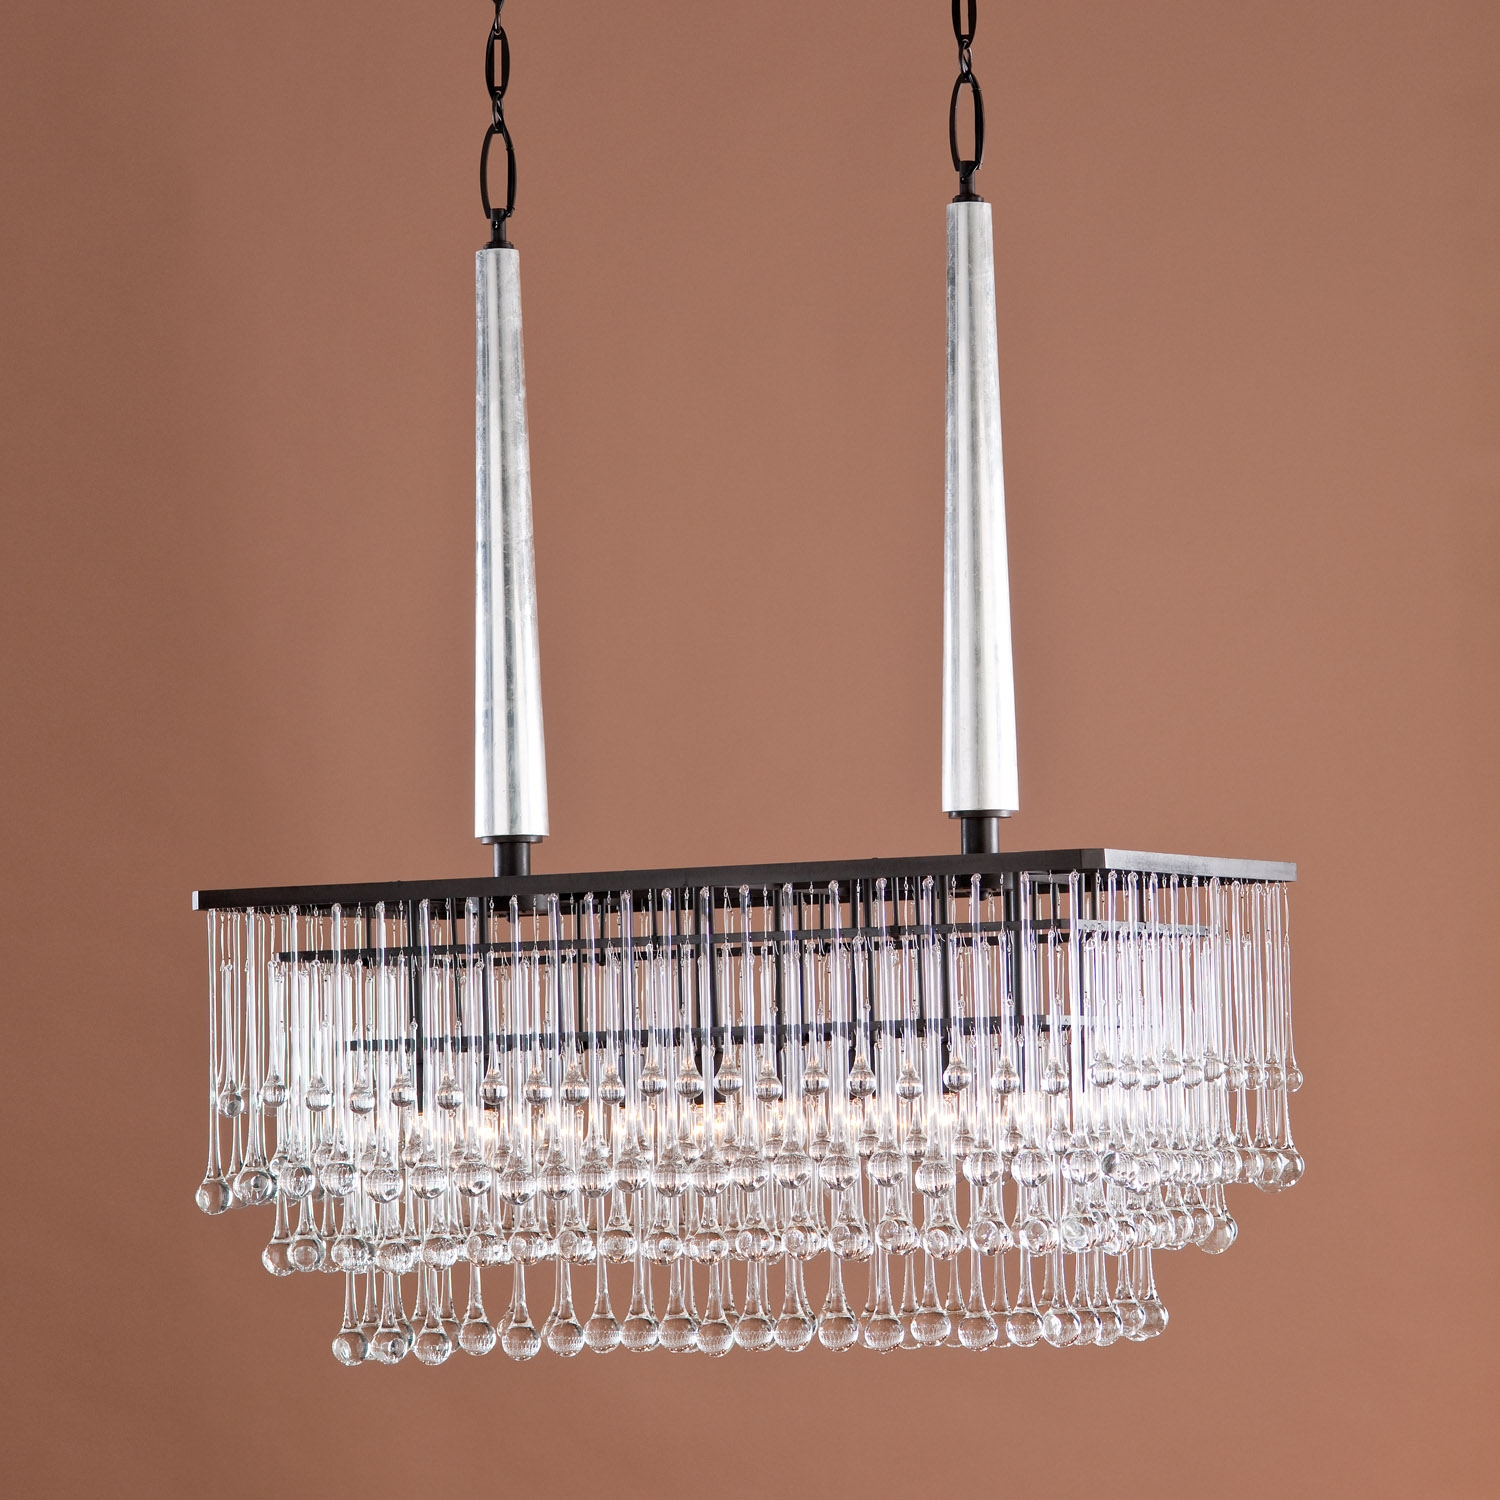 Modern Hanging Rectangular Chandelier With Bronze Frame And With Regard To Bronze Modern Chandelier (Image 13 of 15)